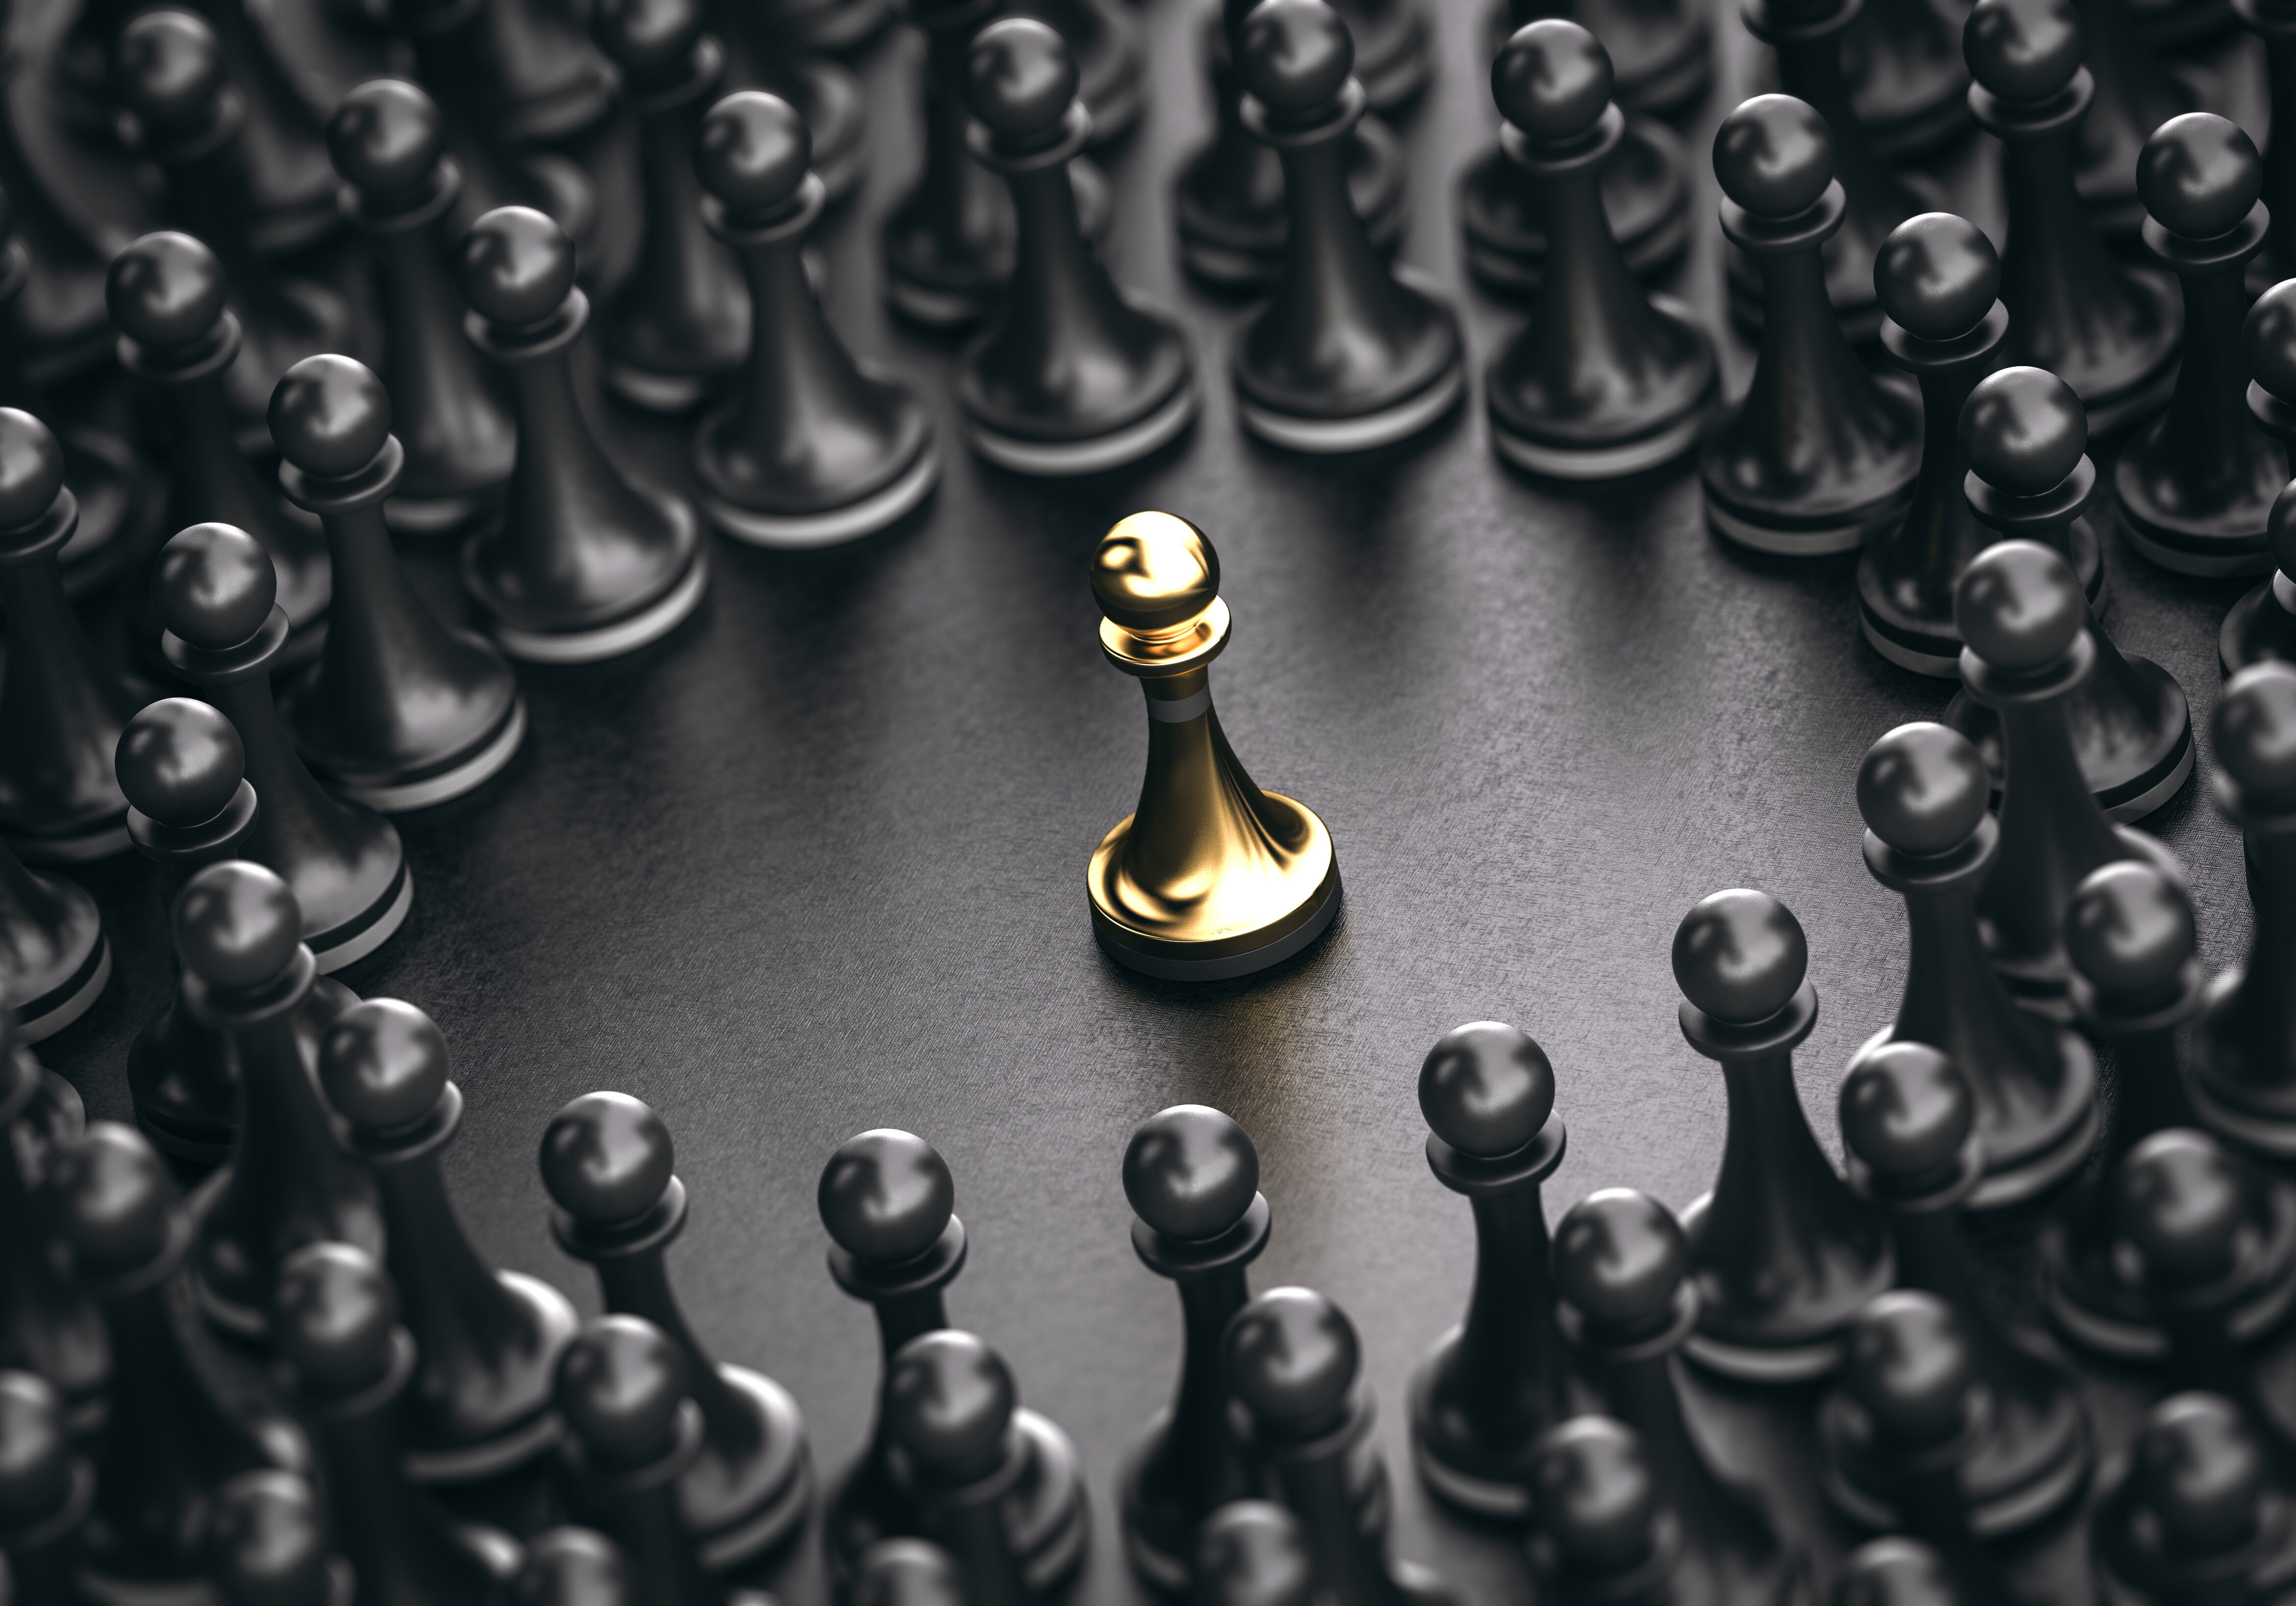 3D illustration of black pawns around a golden one standing out from the crowd. Concept of leadership